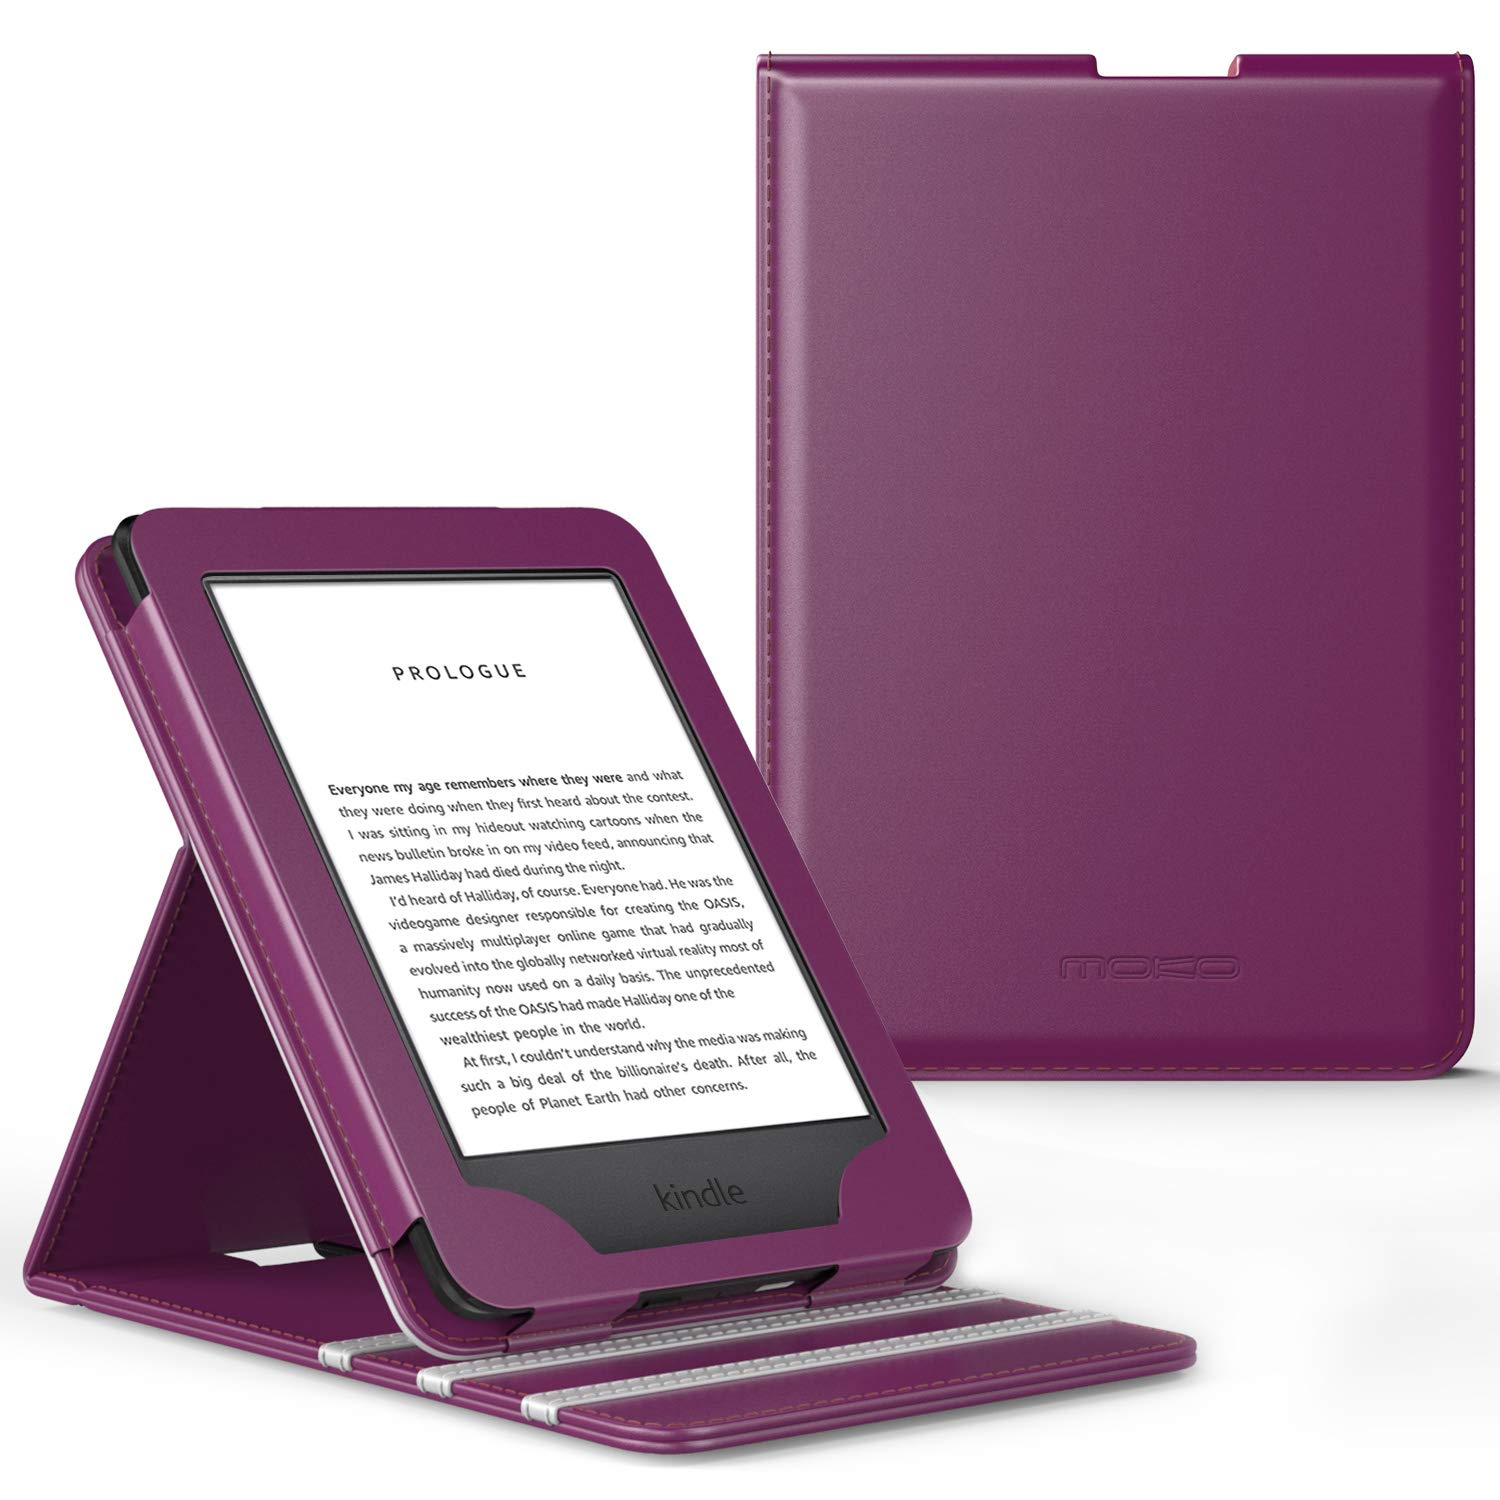 MoKo Case Fits All-New Kindle (10th Generation - 2019 Release Only), Vertical Flip Protective Cover with Auto Wake/Sleep, Will Not Fit Kindle Paperwhite 10th Generation 2018 - Purple